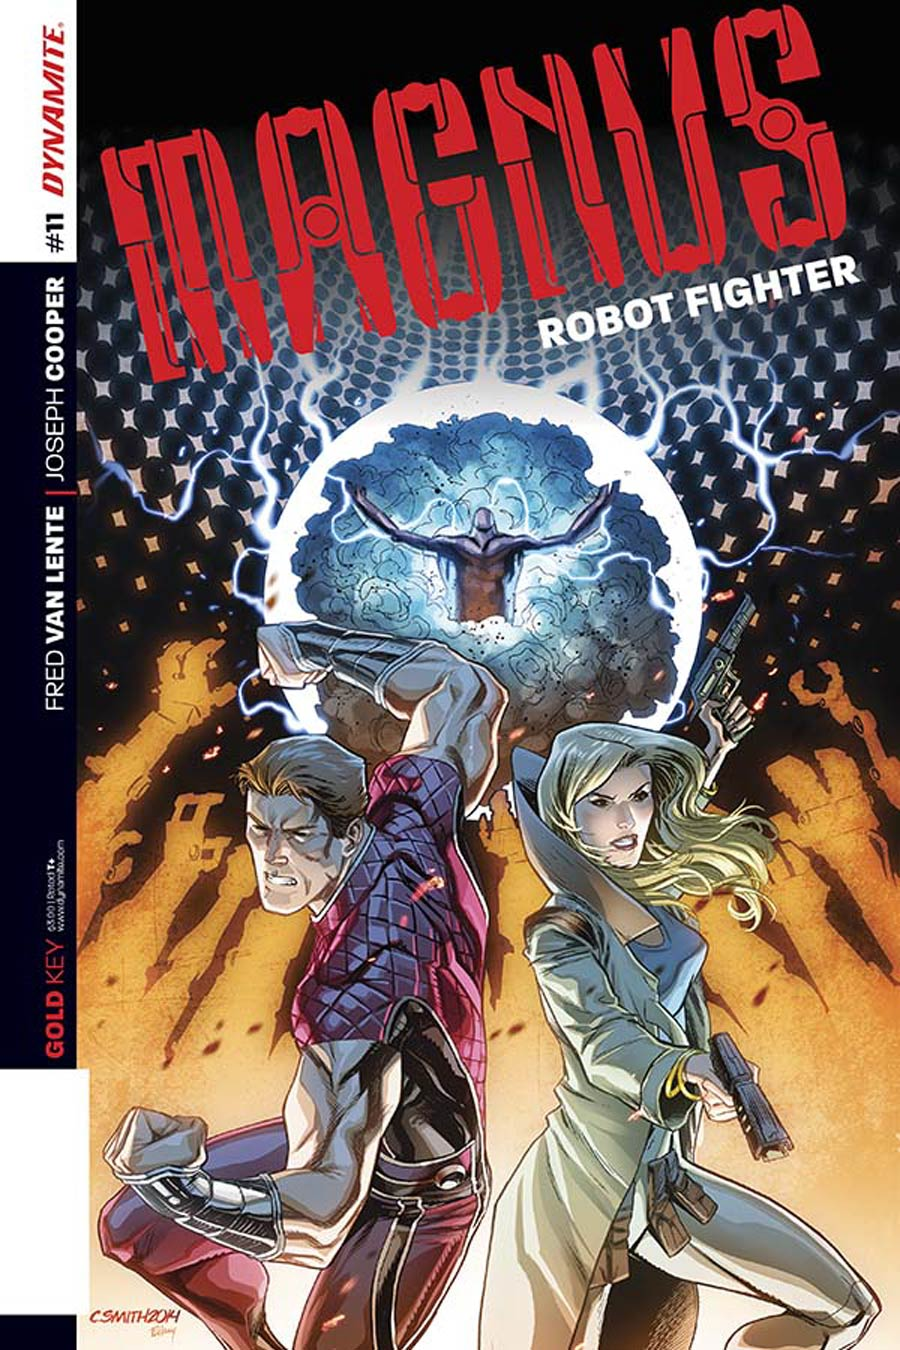 Magnus Robot Fighter Vol 4 #11 Cover B Variant Cory Smith Subscription Cover